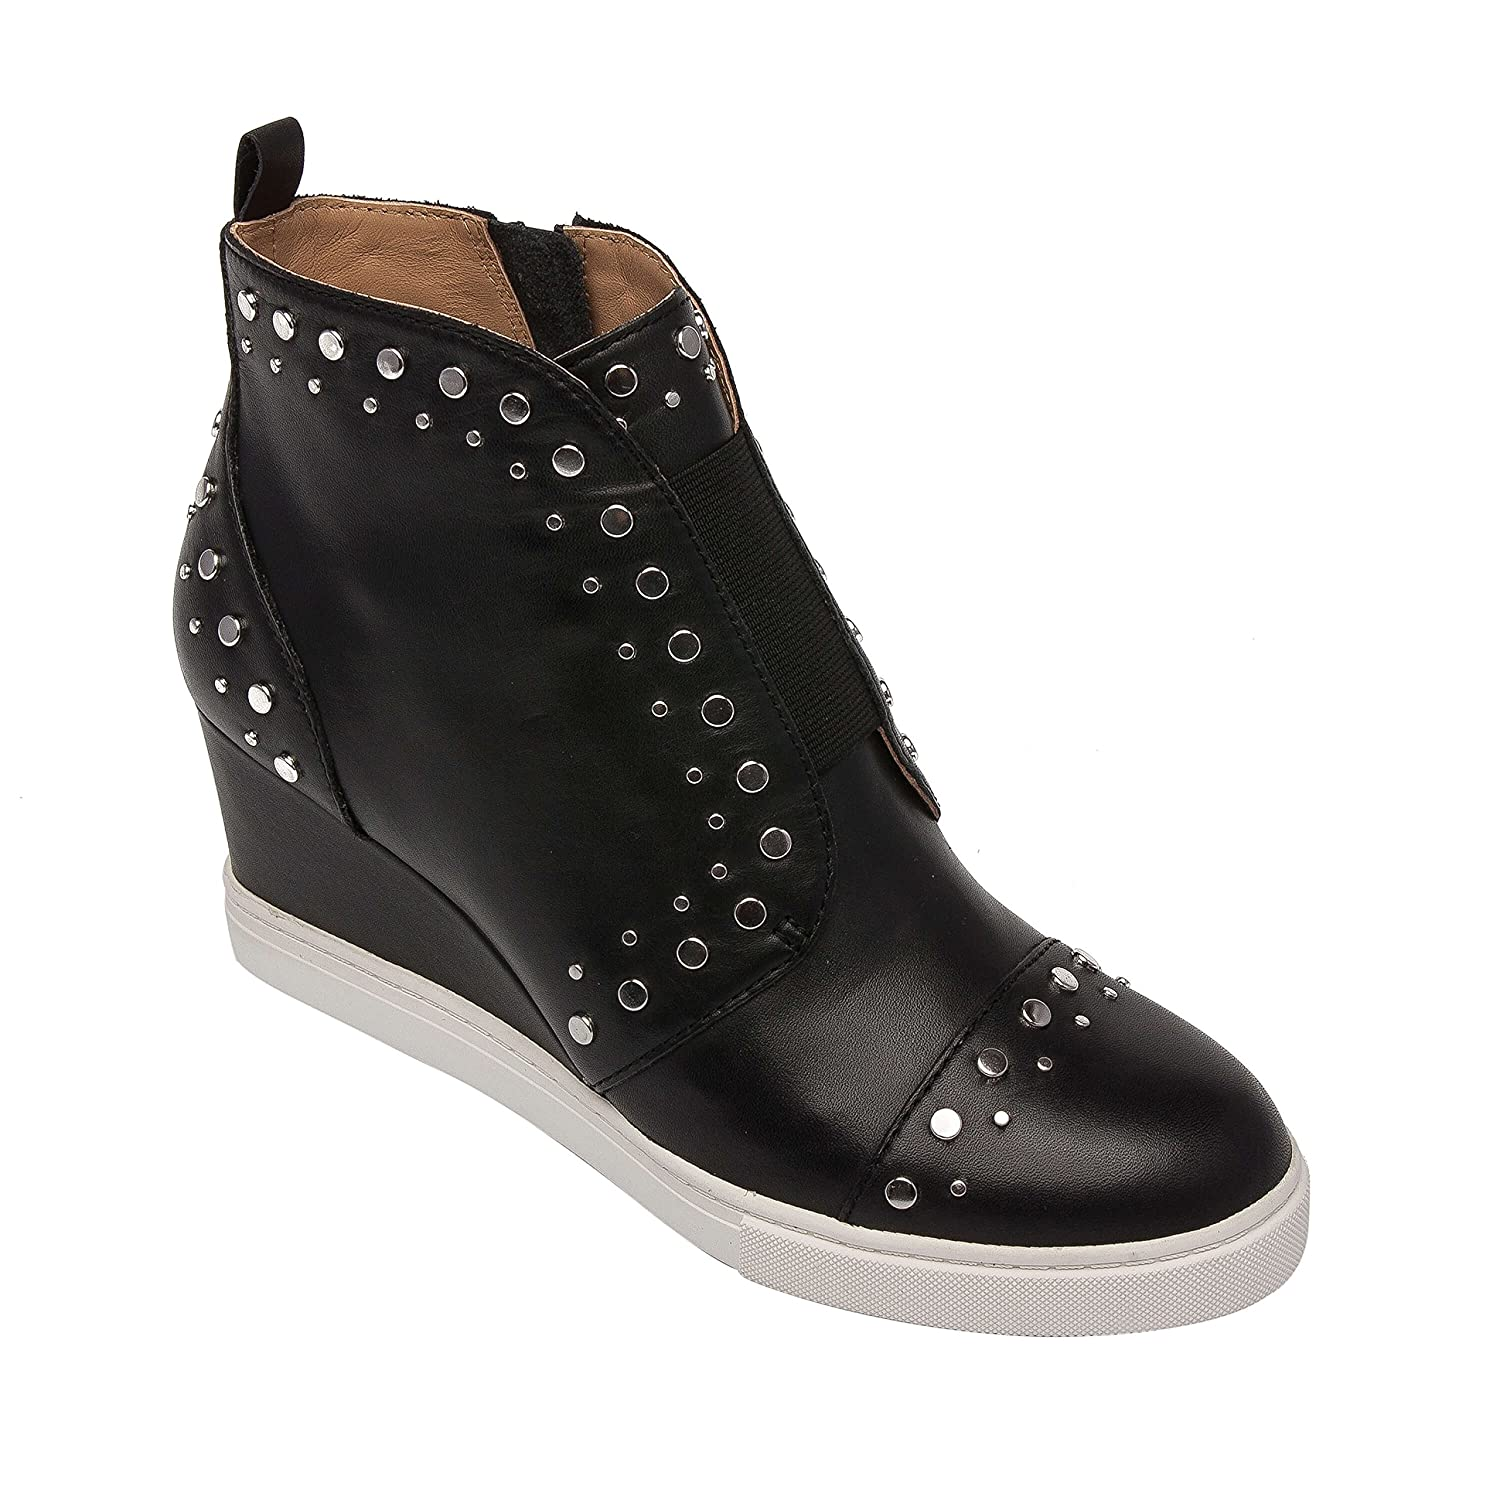 Felicity | Micro Stud Embellished Leather Fashion Wedge Sneaker Bootie B07C8MP772 11 M US|Black Leather